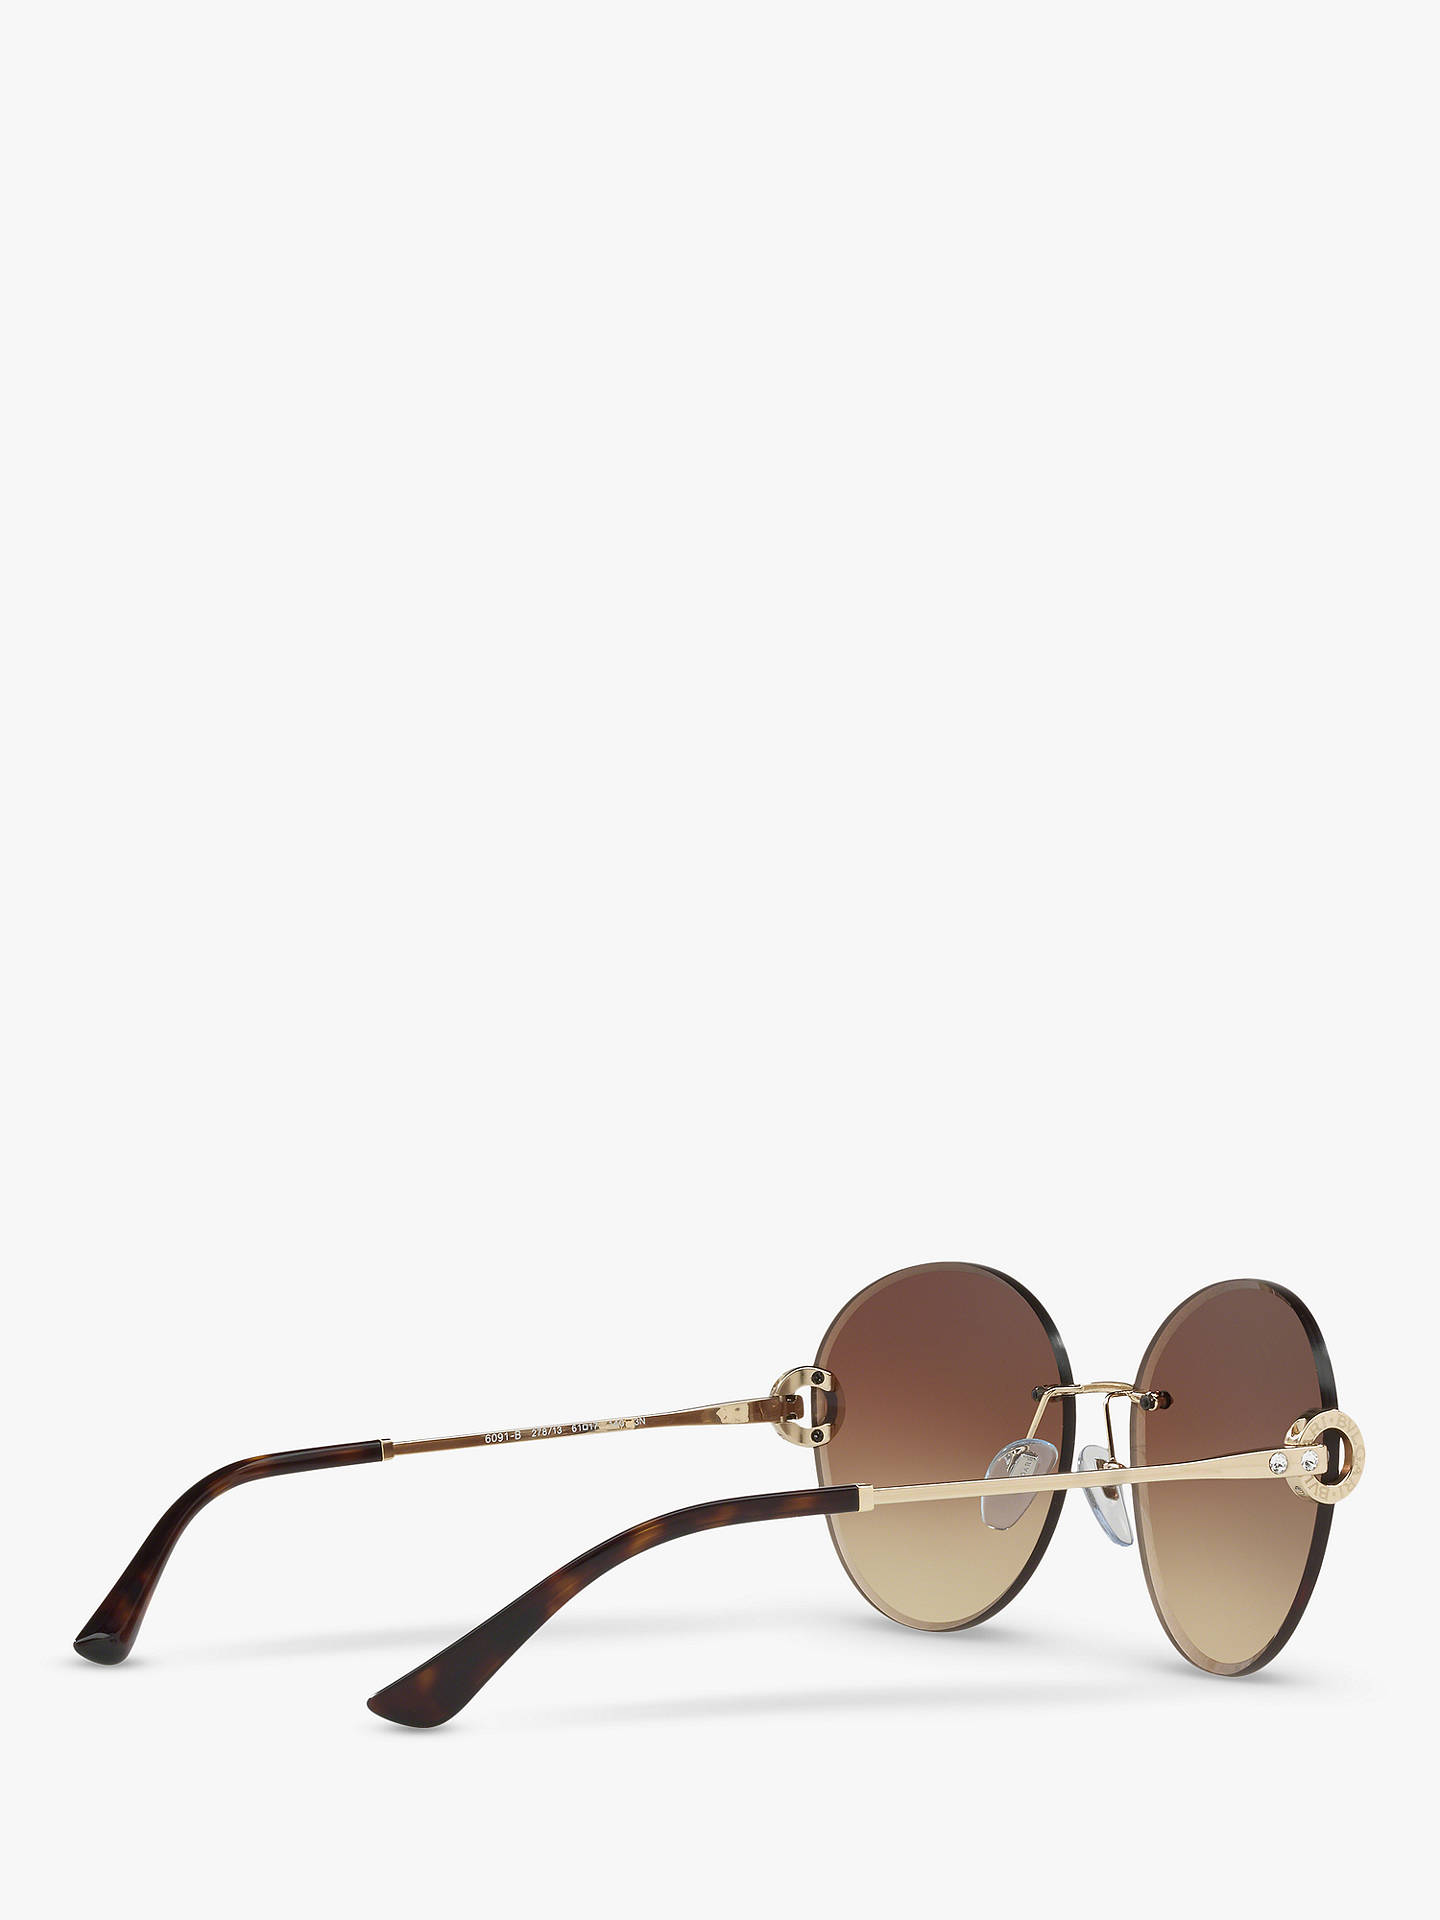 5f3e9a4c981114 ... BuyBVLGARI BV6091B Round Sunglasses, Rose Gold Brown Gradient Online at  johnlewis.com ...